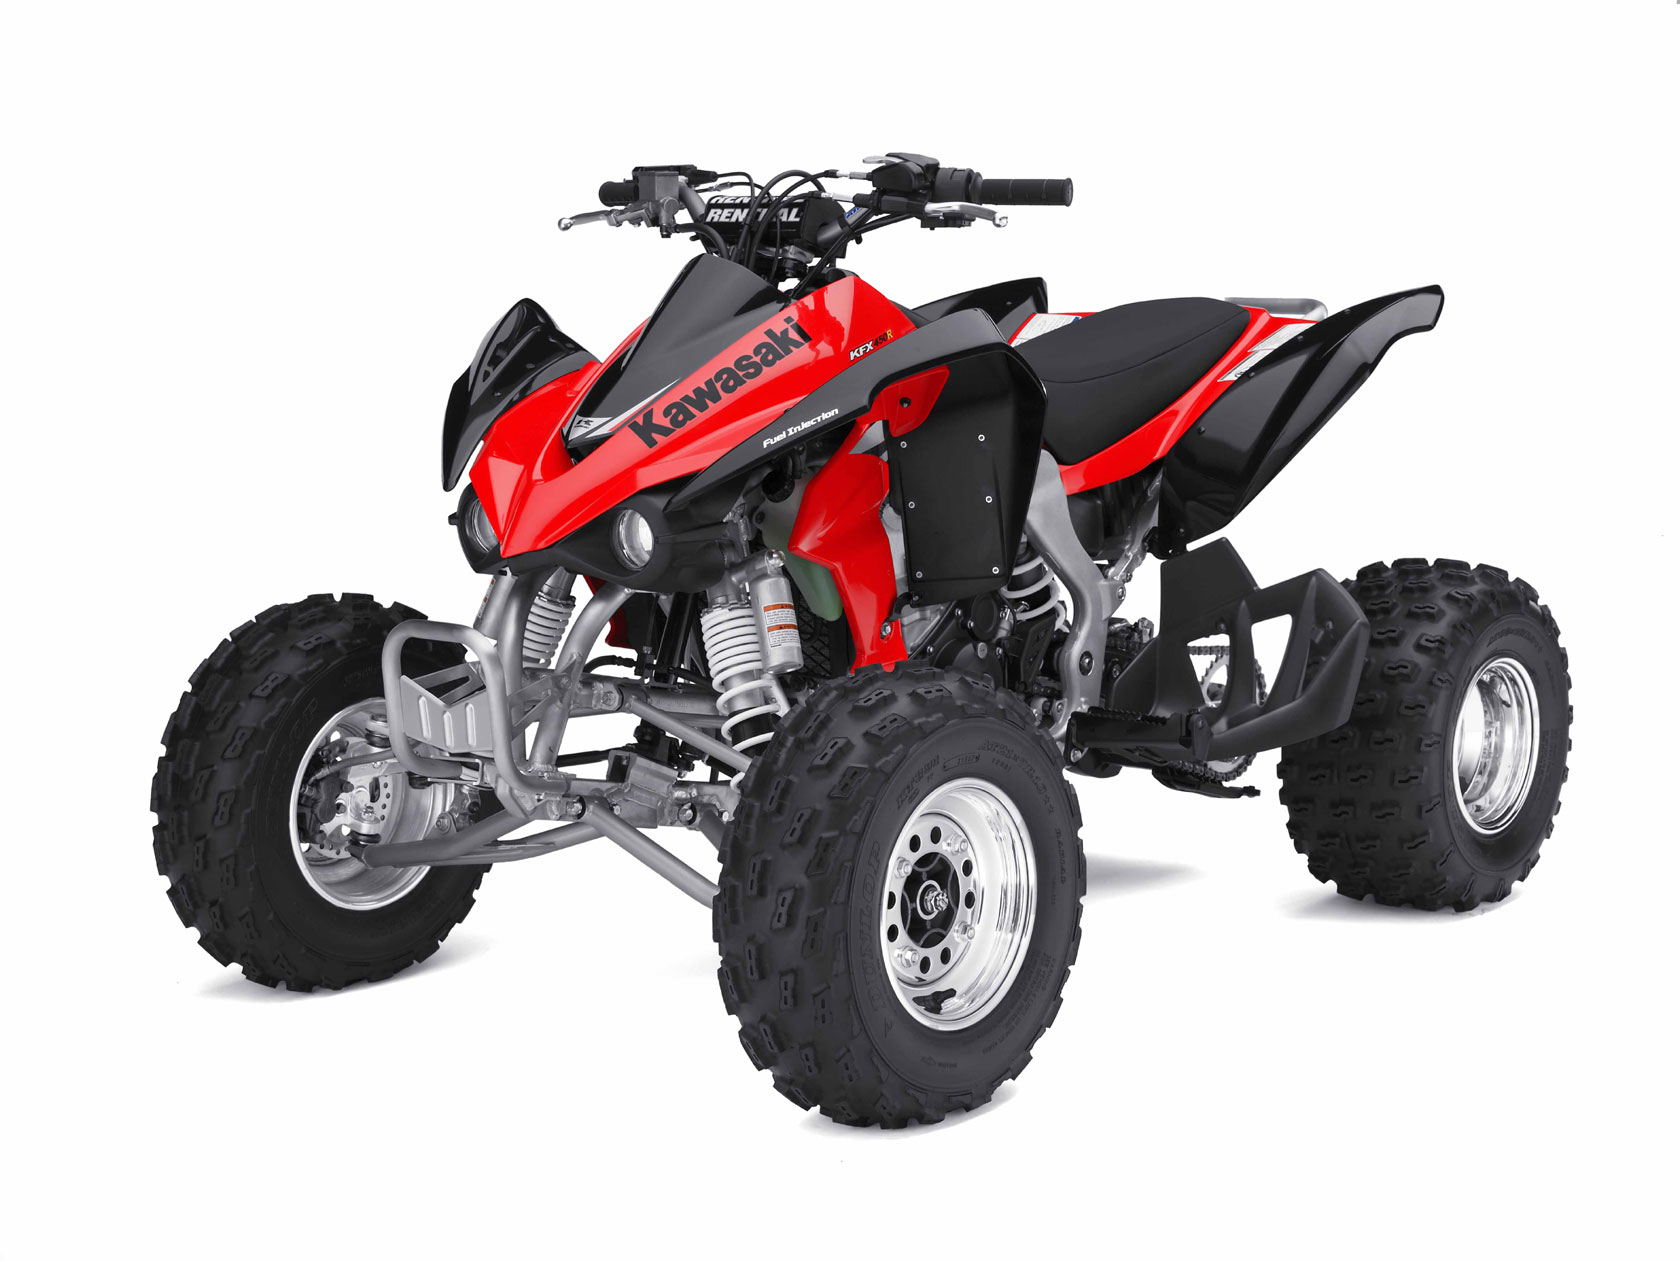 kawasaki kfx 450r specs 2008 2009 autoevolution. Black Bedroom Furniture Sets. Home Design Ideas